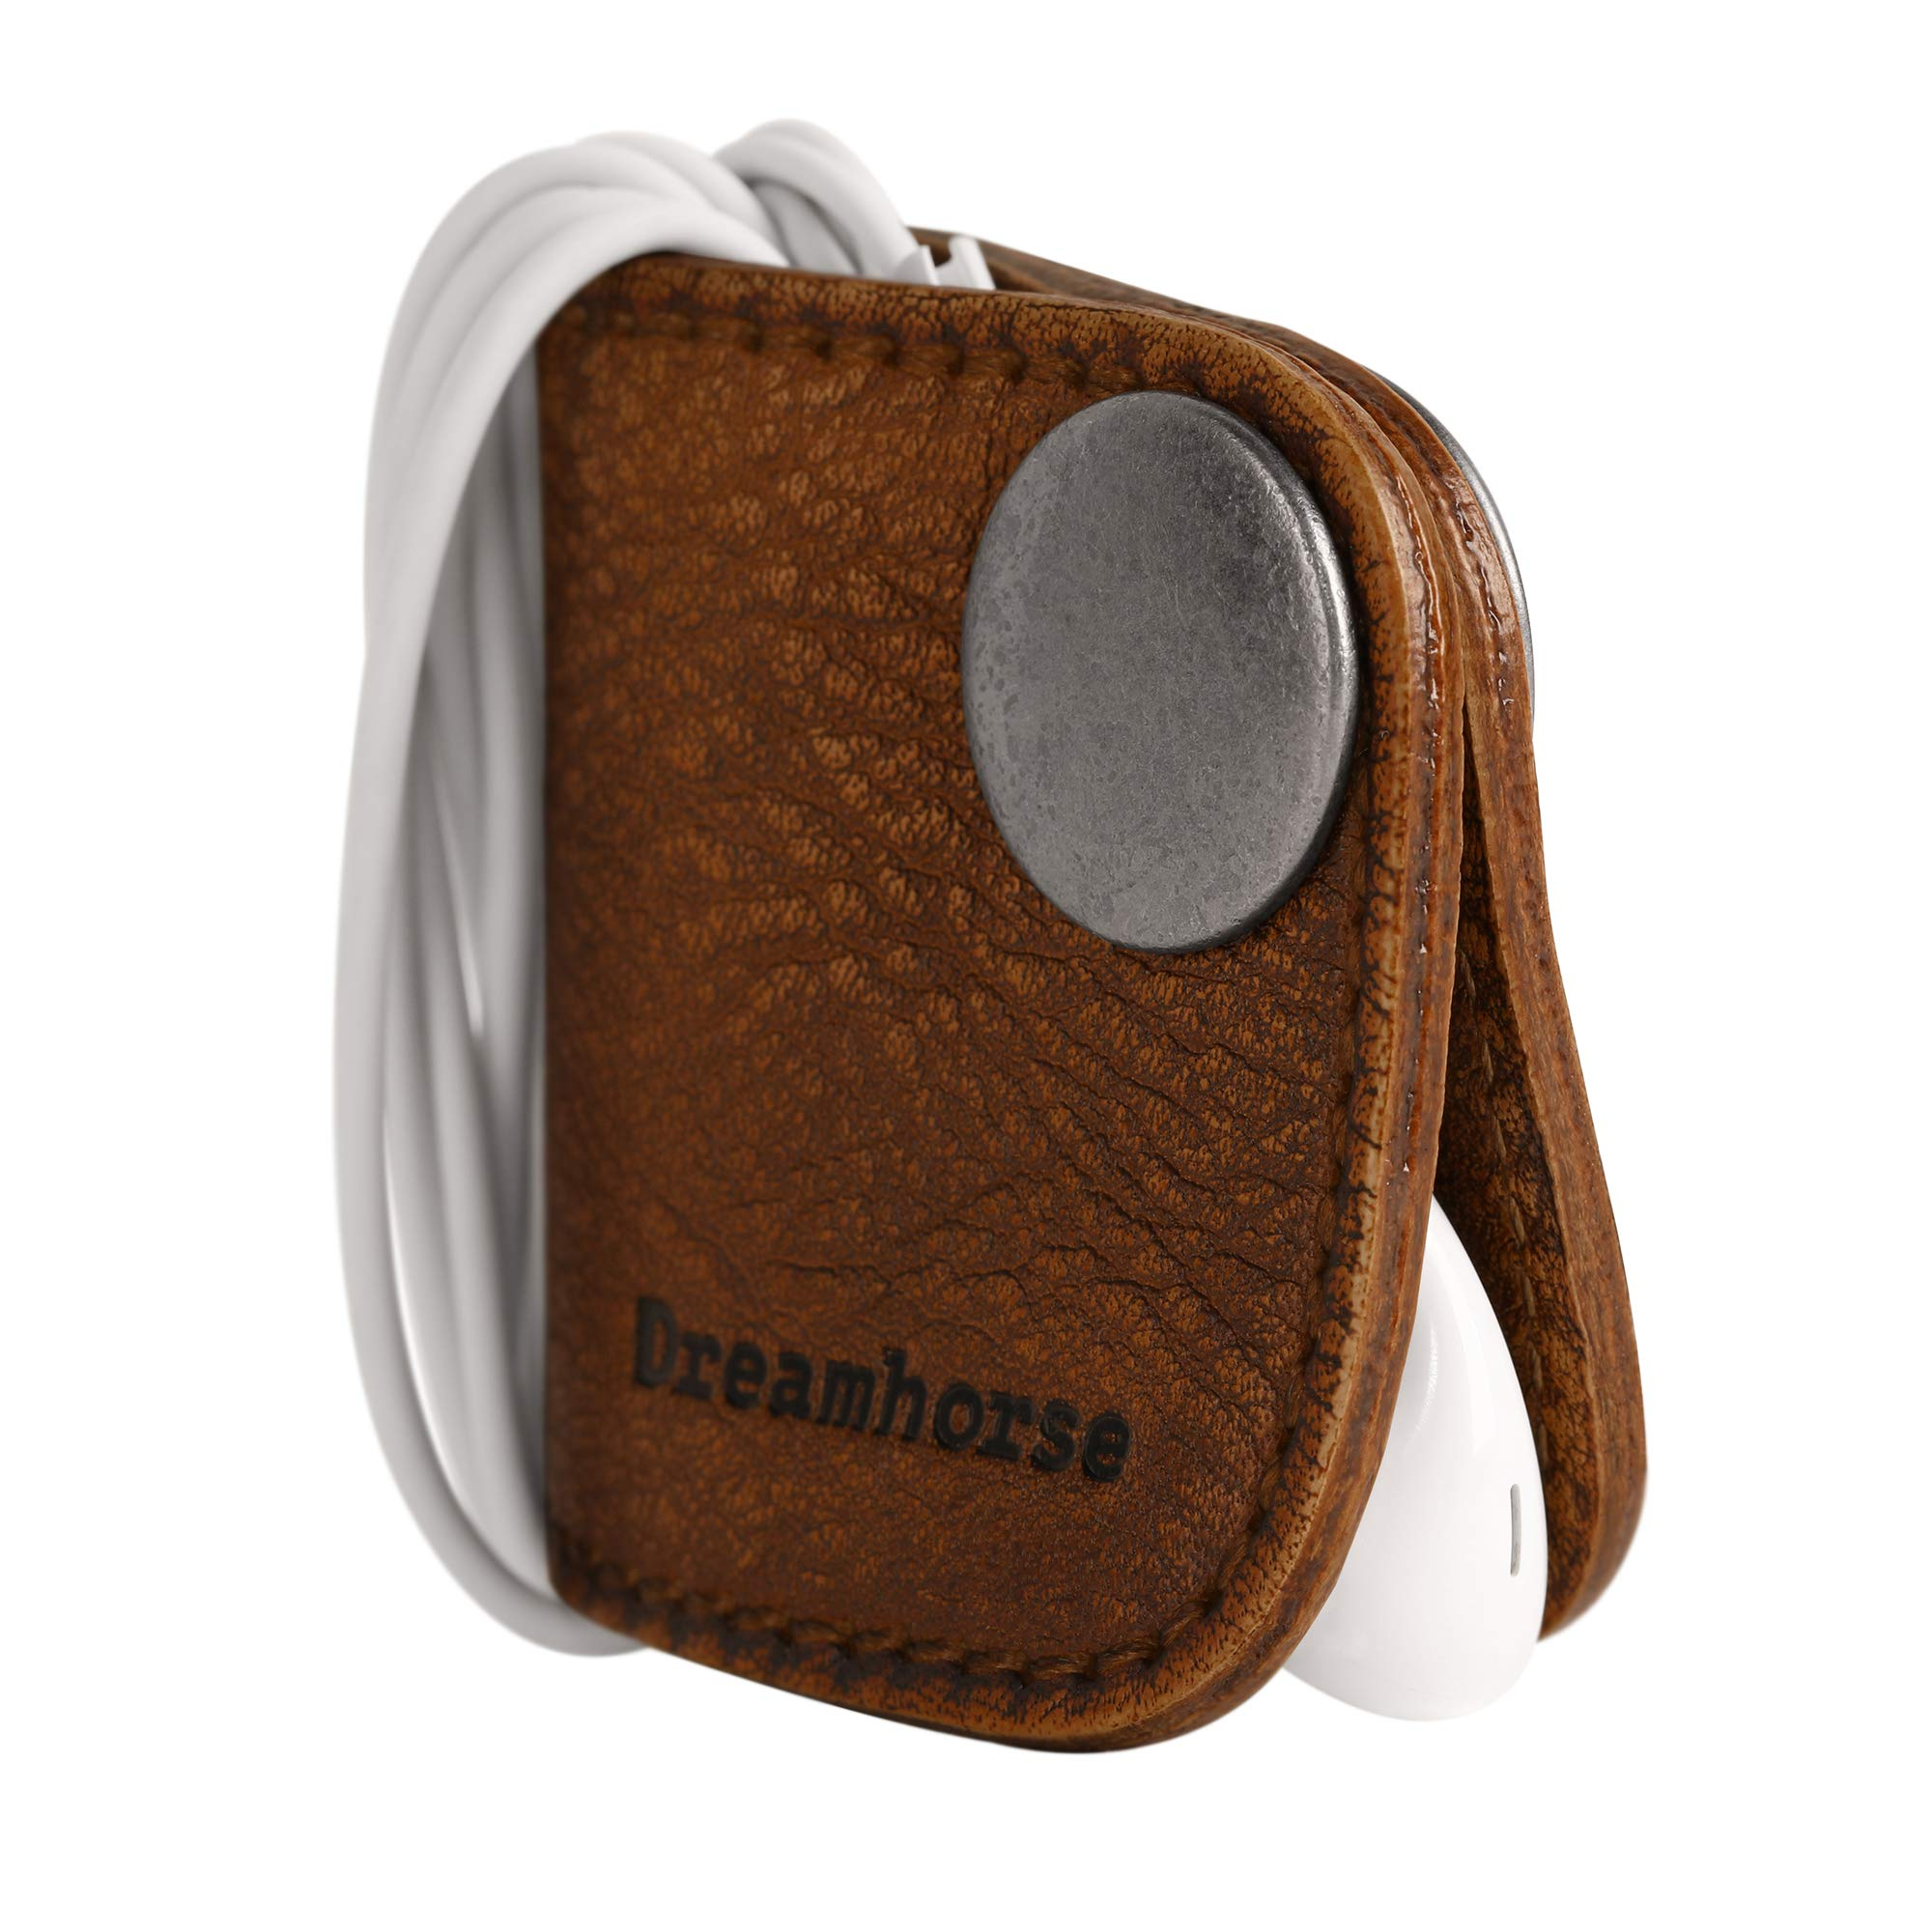 Cord Winder Cord Organizer Earbud Holder Earphone Wrap Earphone Organizer Headset Headphones Earphone Wrap Dreamhorse's Handmade Leather Protection Headphone Cable Pack of 2 Brown by DreamHorse (Image #3)